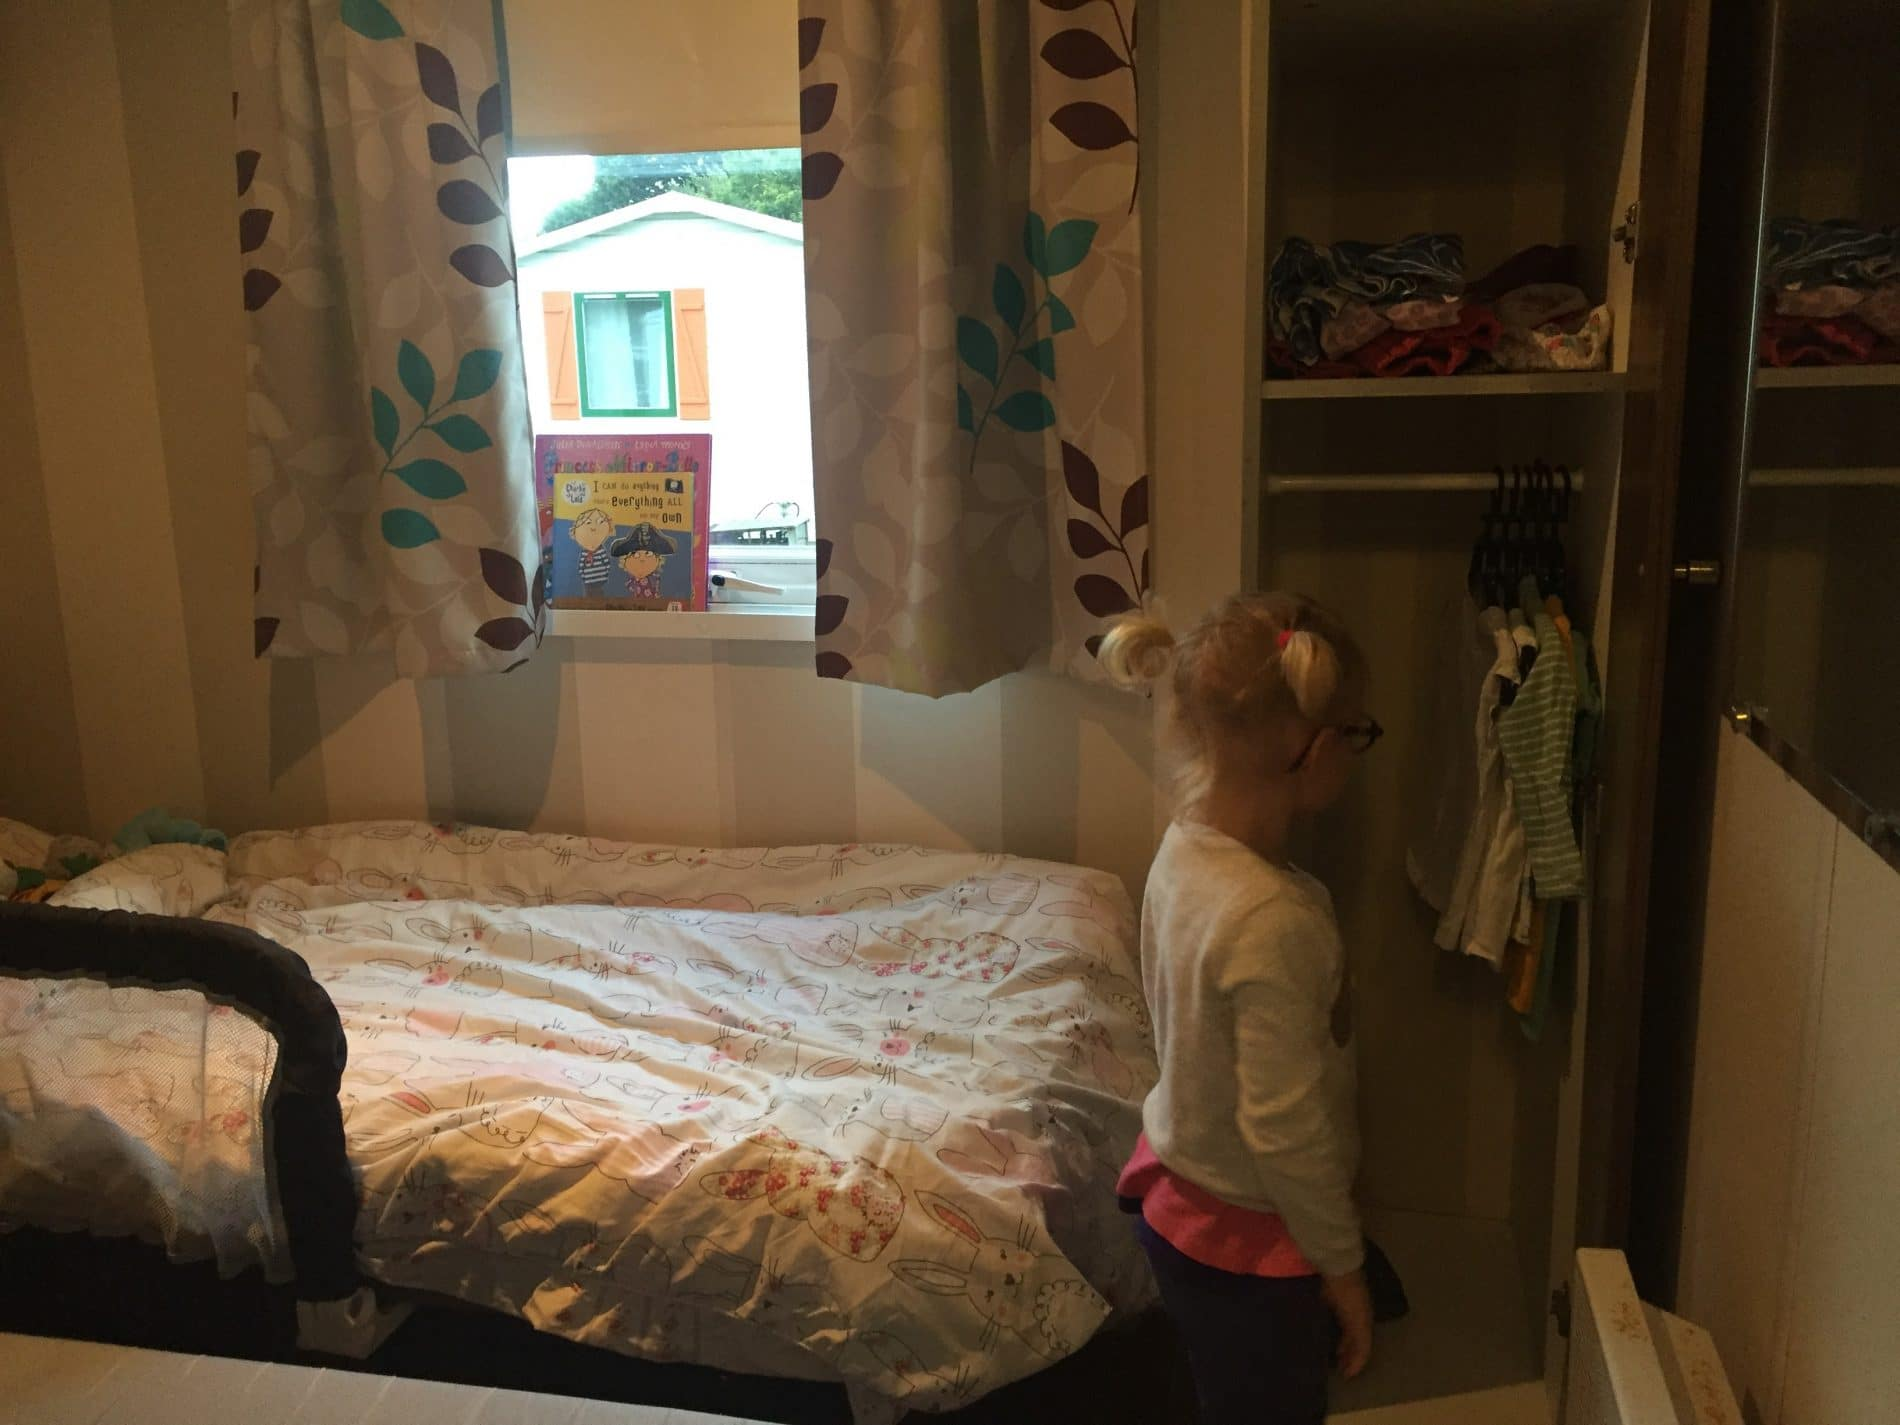 Toddler organising her room at Duinrell